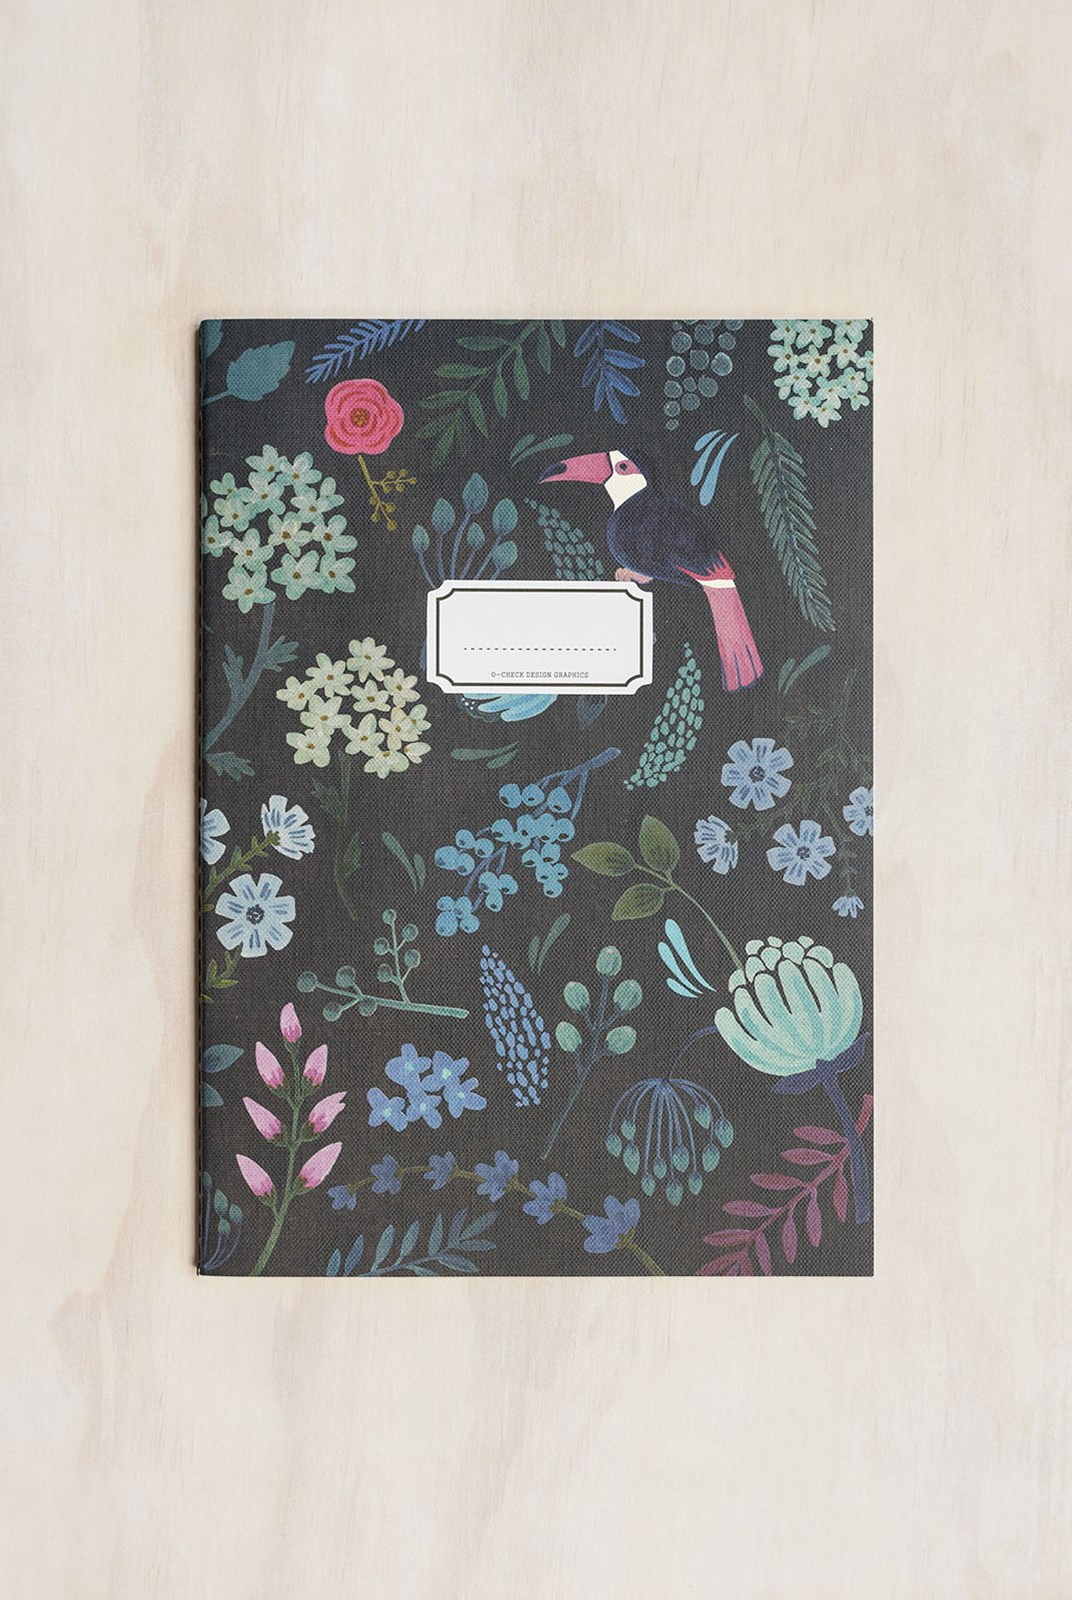 O-Check Design Graphics - Cahier Notebook - Ruled - Large - Garden Black